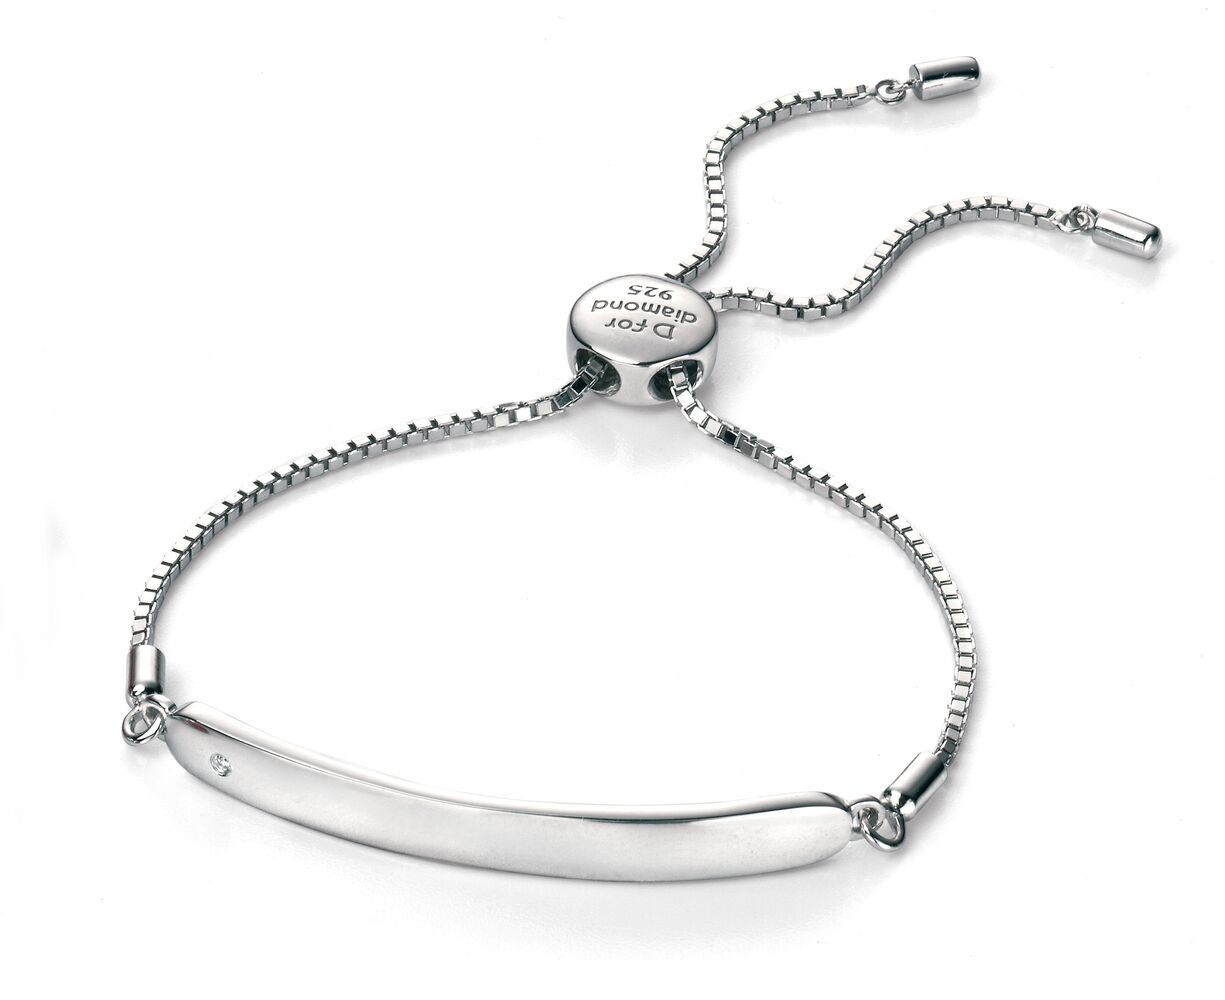 4601a1bd7f92ed D for Diamond Silver ID Chain Bracelet - B4788 - Diamond Kids